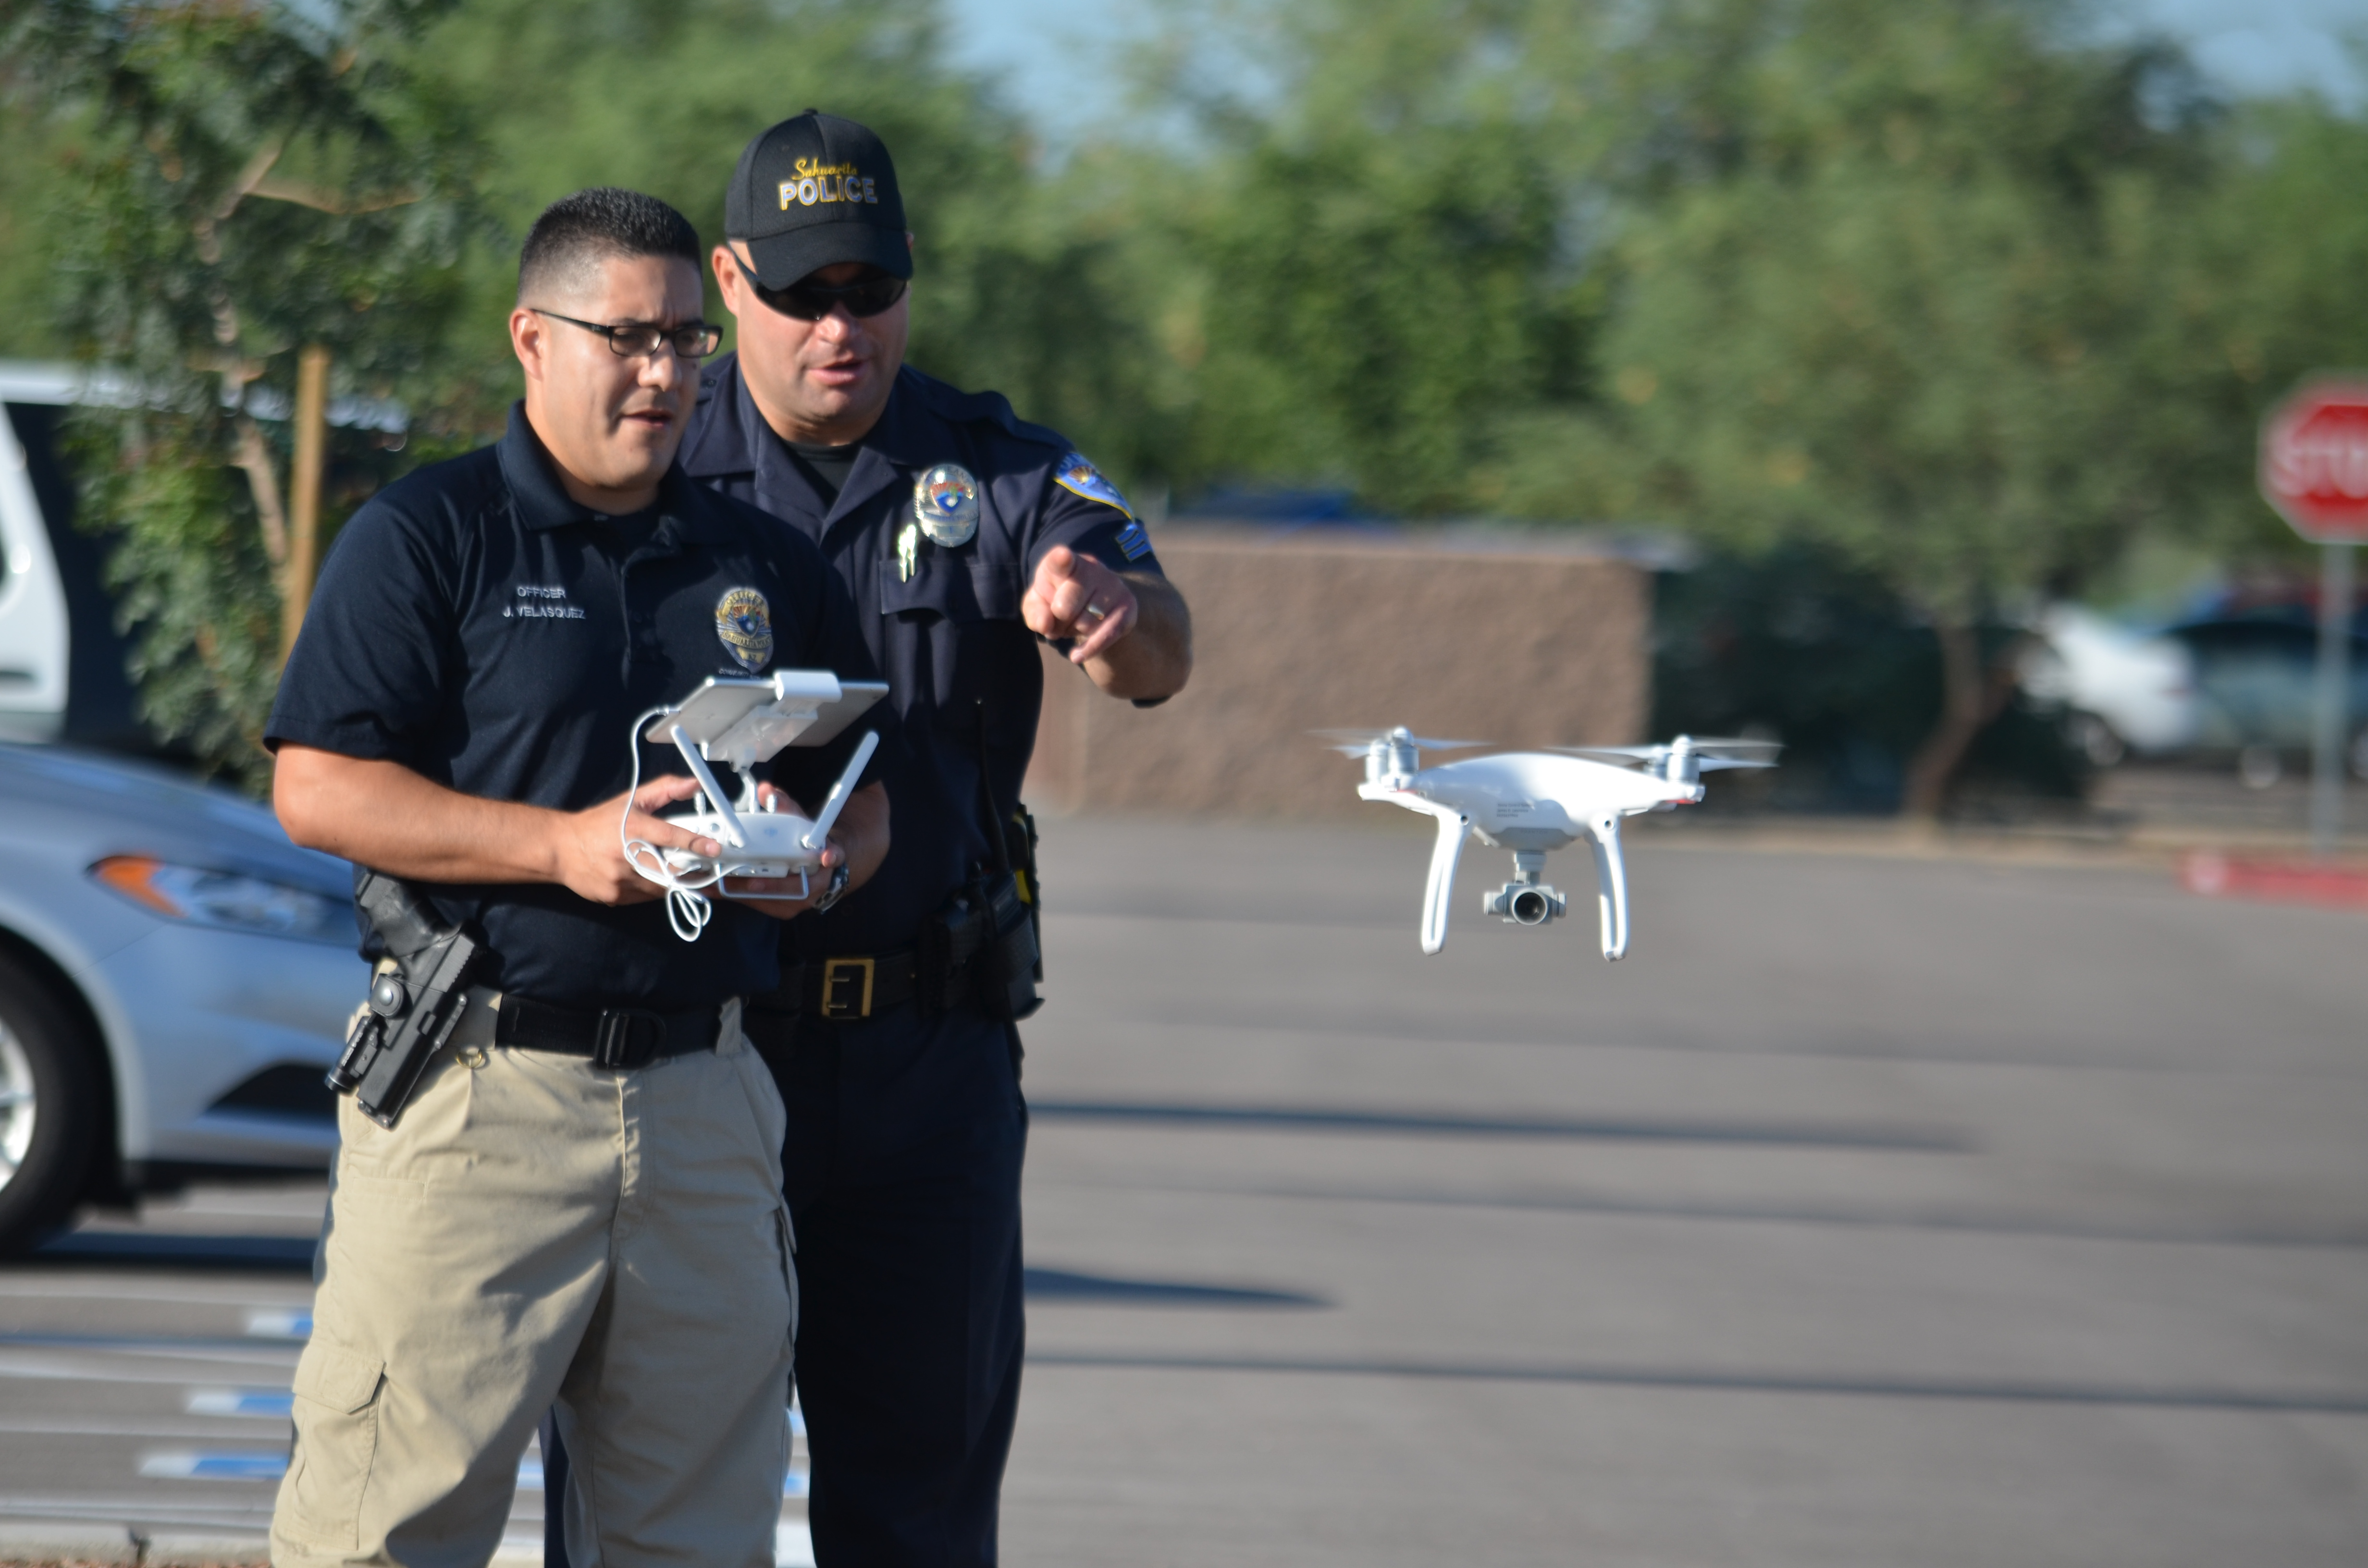 Arizona Agency Implementing Drones In Police Work